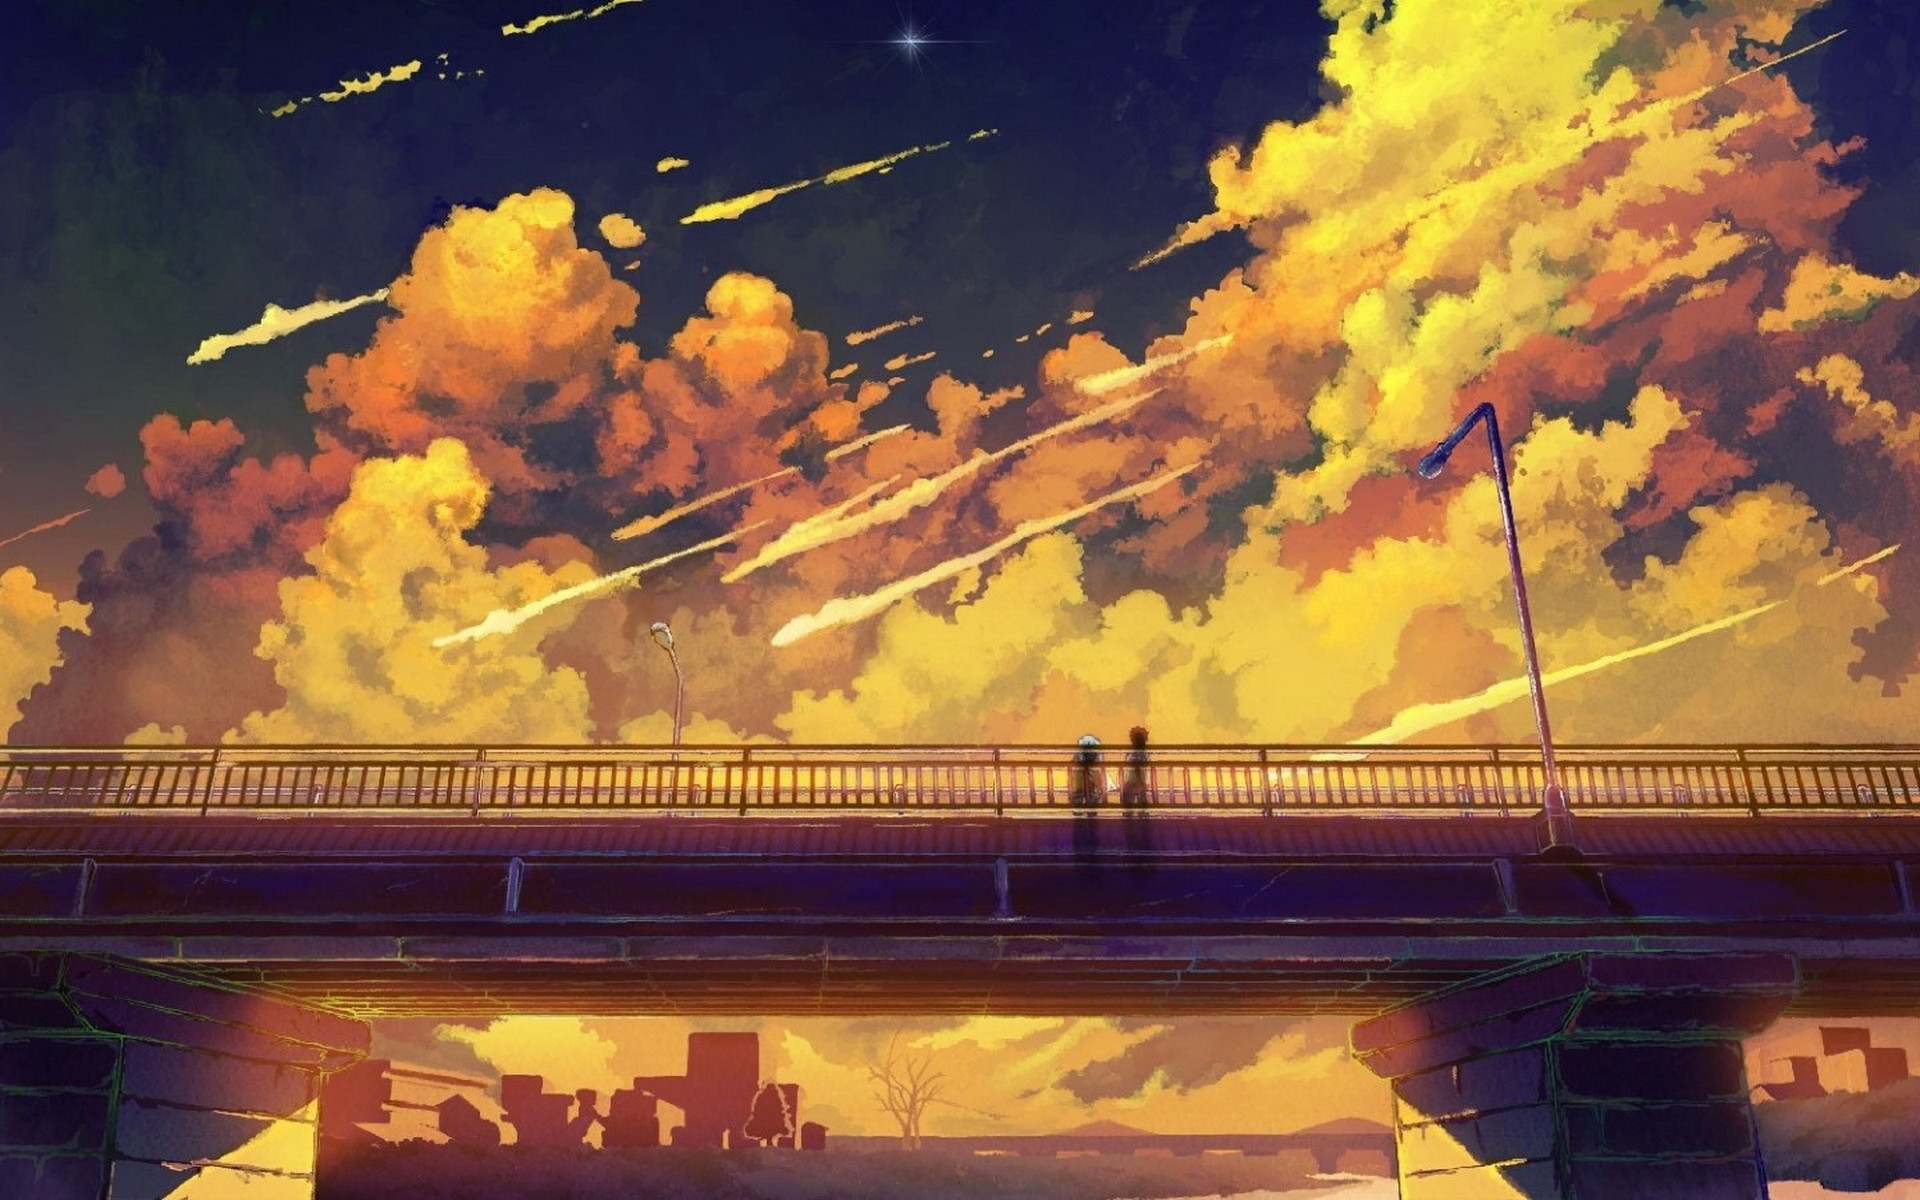 Anime Scenery Free Wallpapers 2711 – HD Wallpaper Site